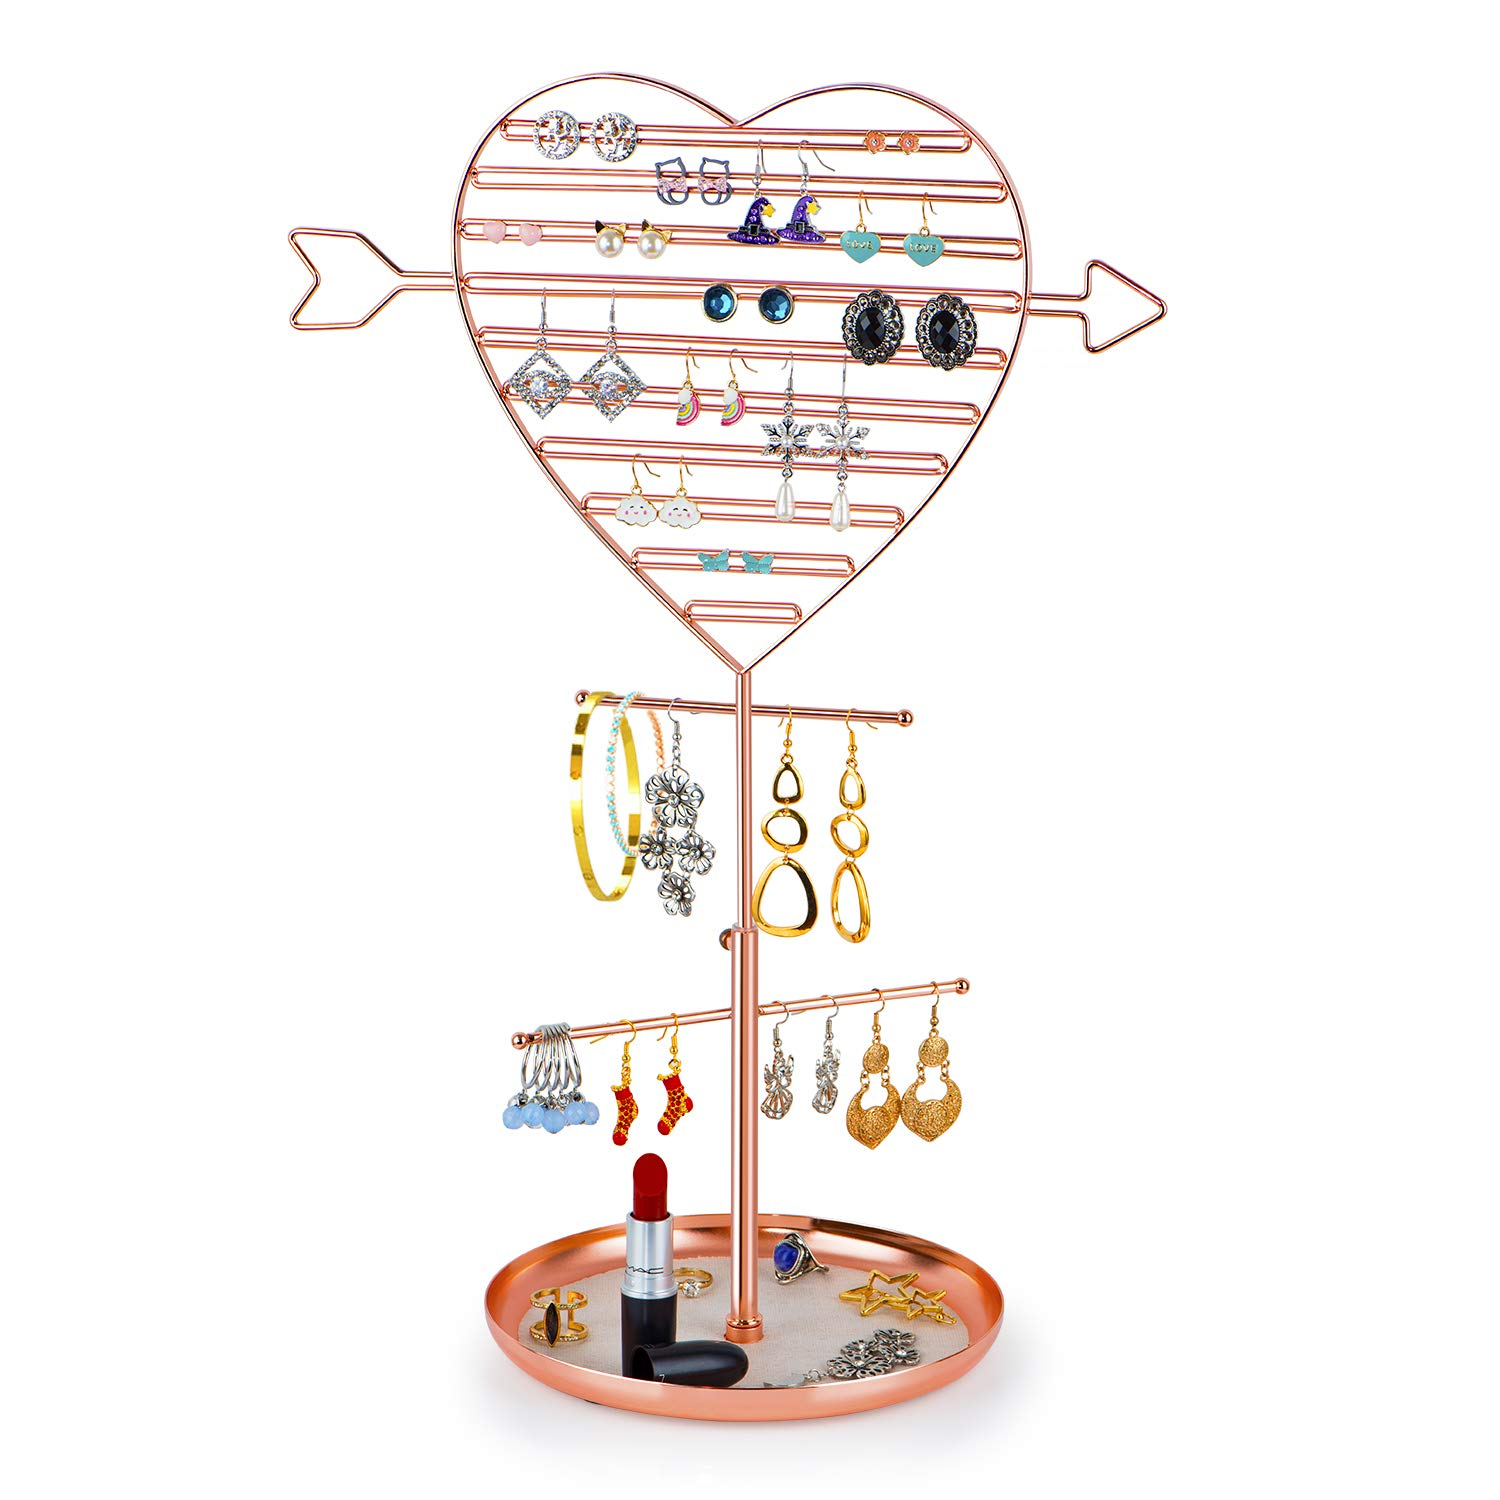 "SRIWATANA Jewelry Holder Organizer, Earring Holder Tree, Metal Earring Organizer with Cupid""s Arrow Design (Rose Gold)"